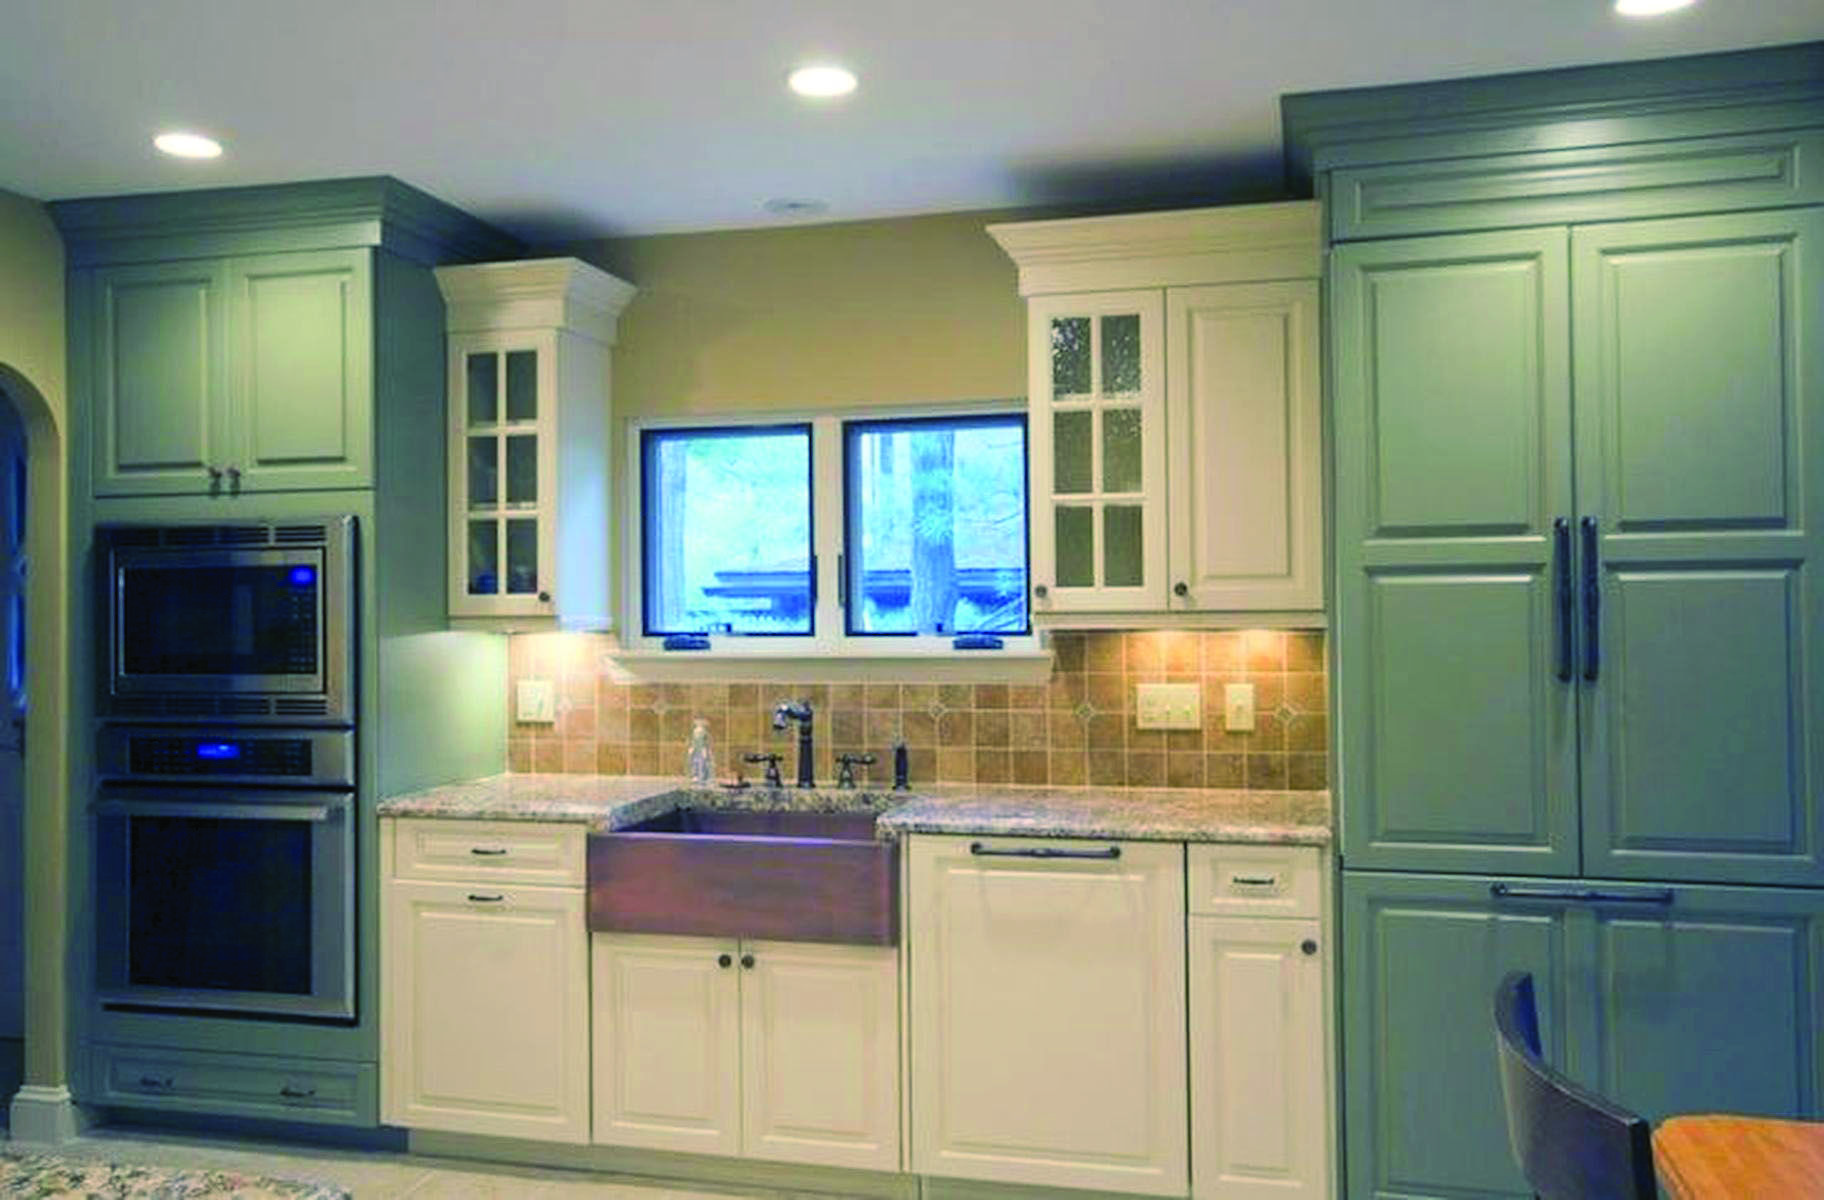 Leading Fad In Kitchen Cabinetry Style Homes Tre Blue Kitchen Cabinets Dark Blue Kitchens Dark Blue Kitchen Cabinets